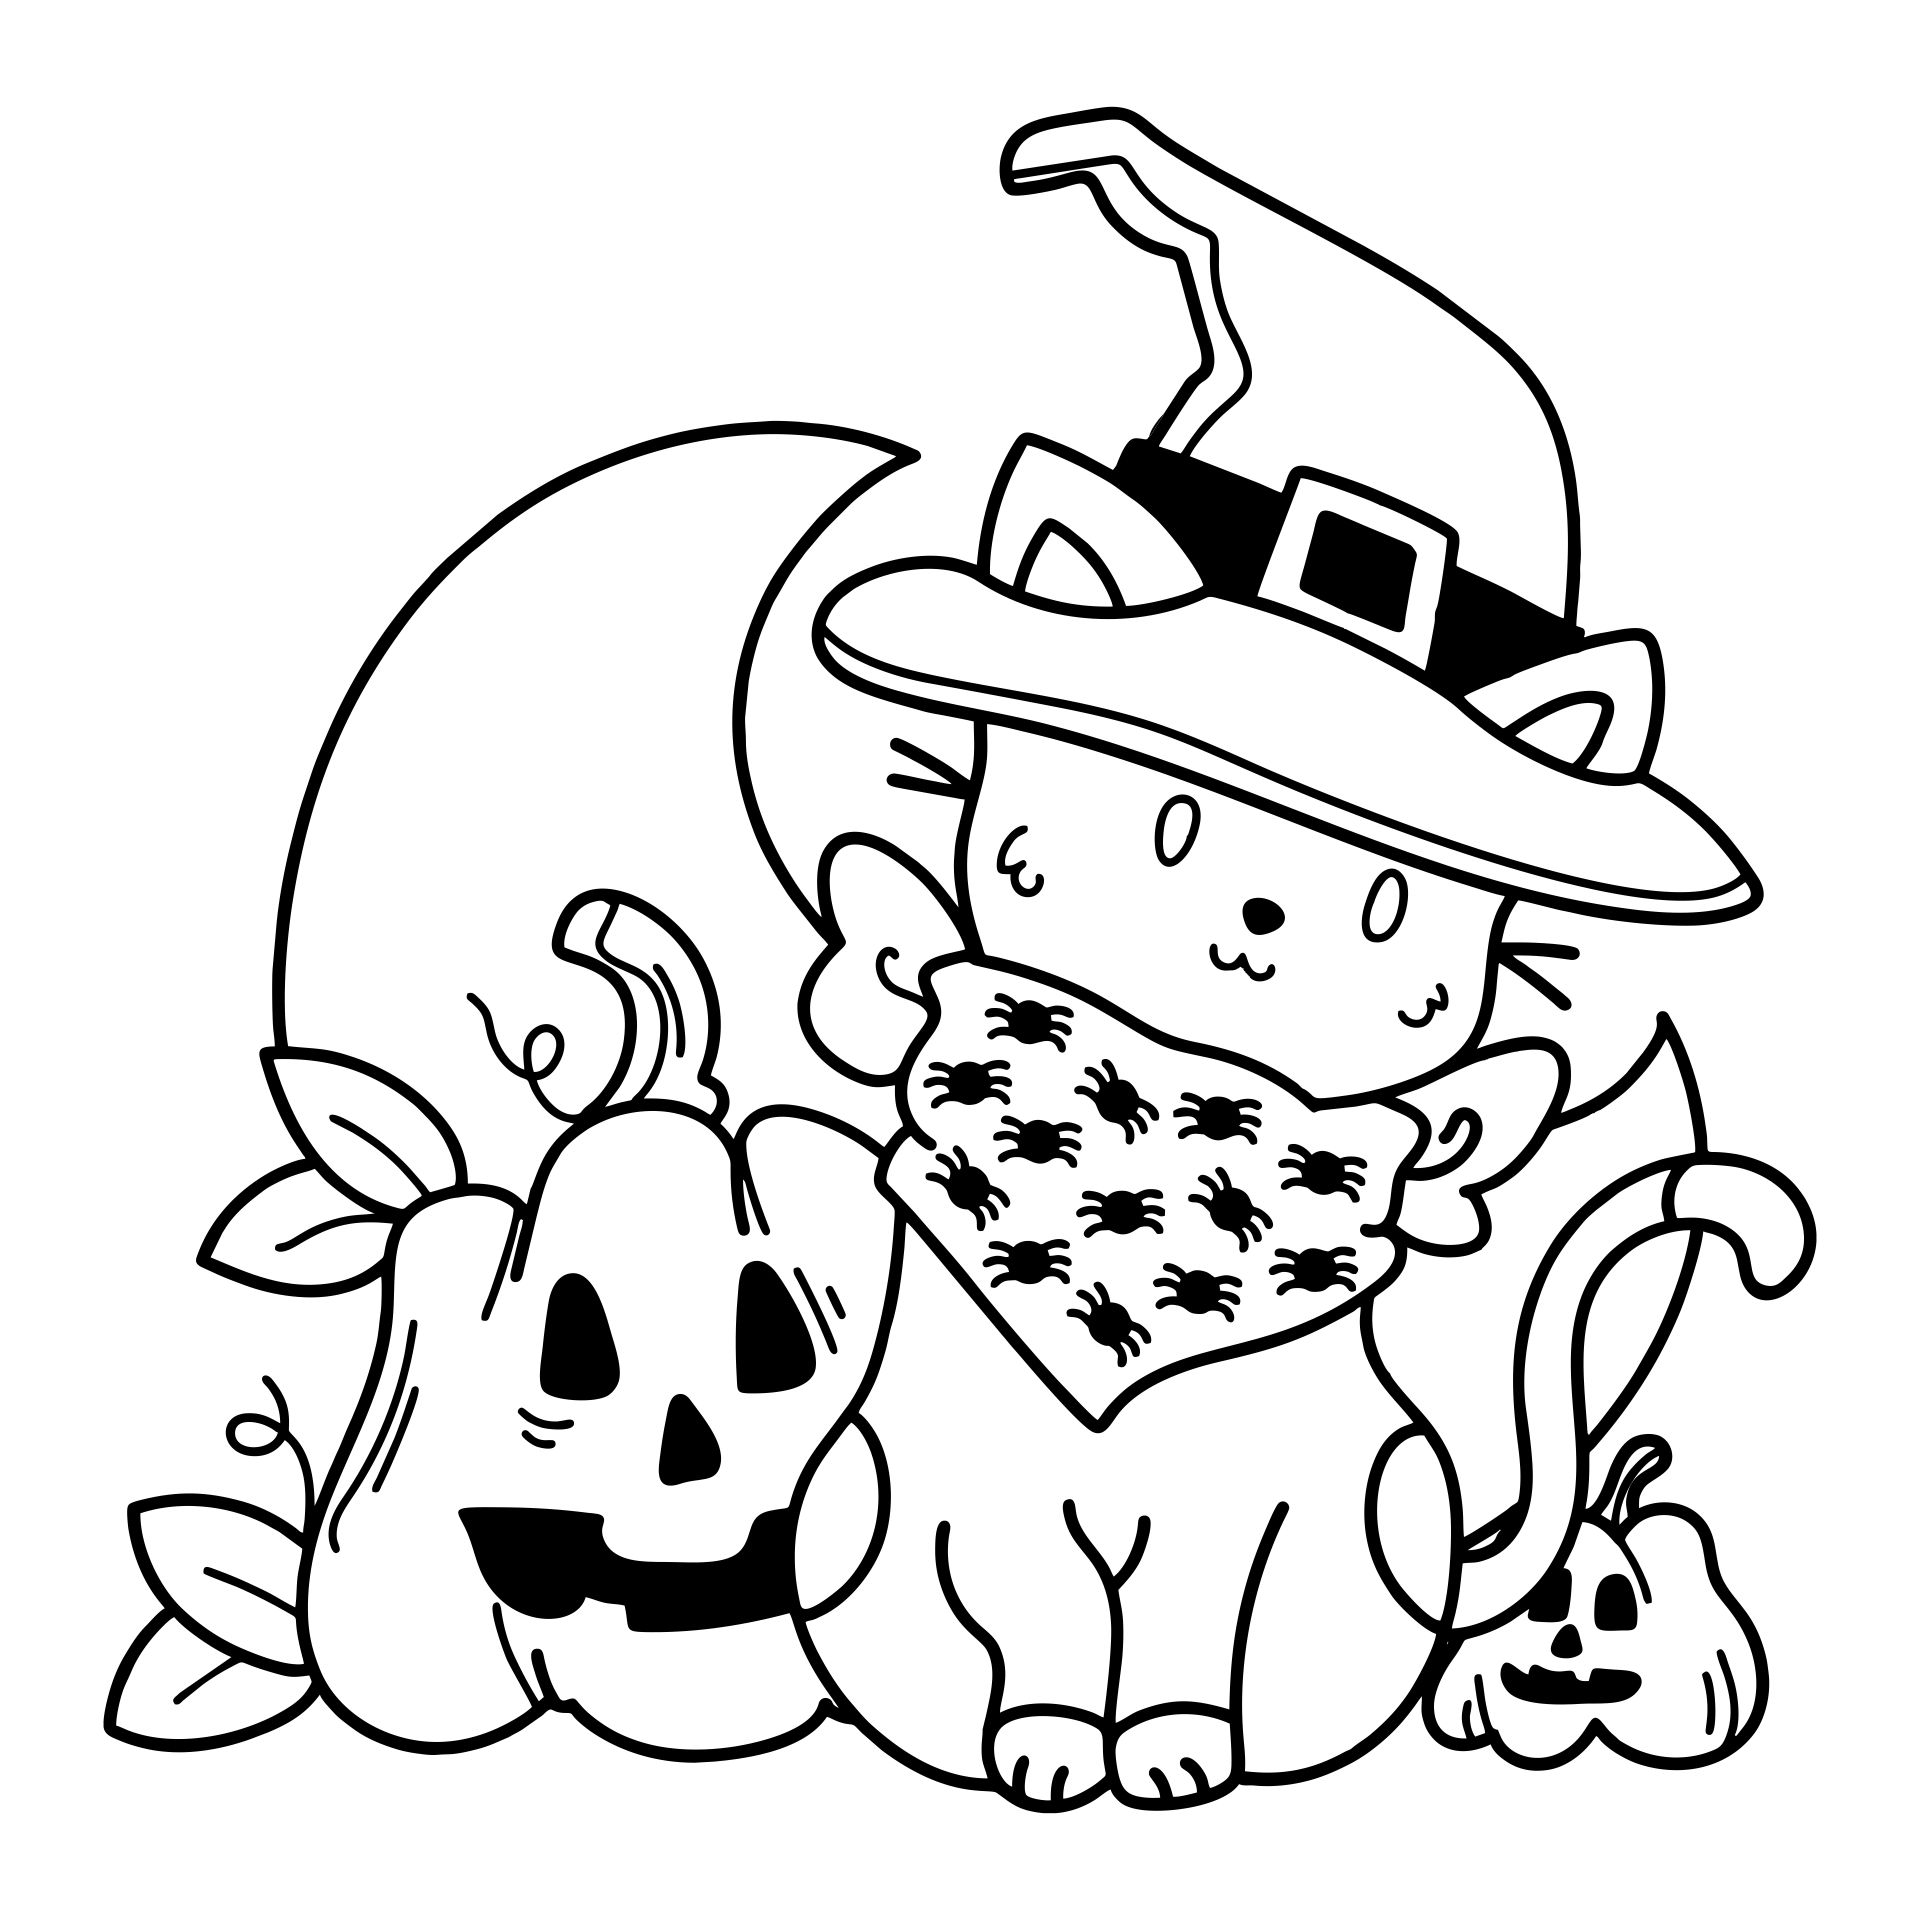 4 Best Images of Pre School Halloween Activity Printable ...